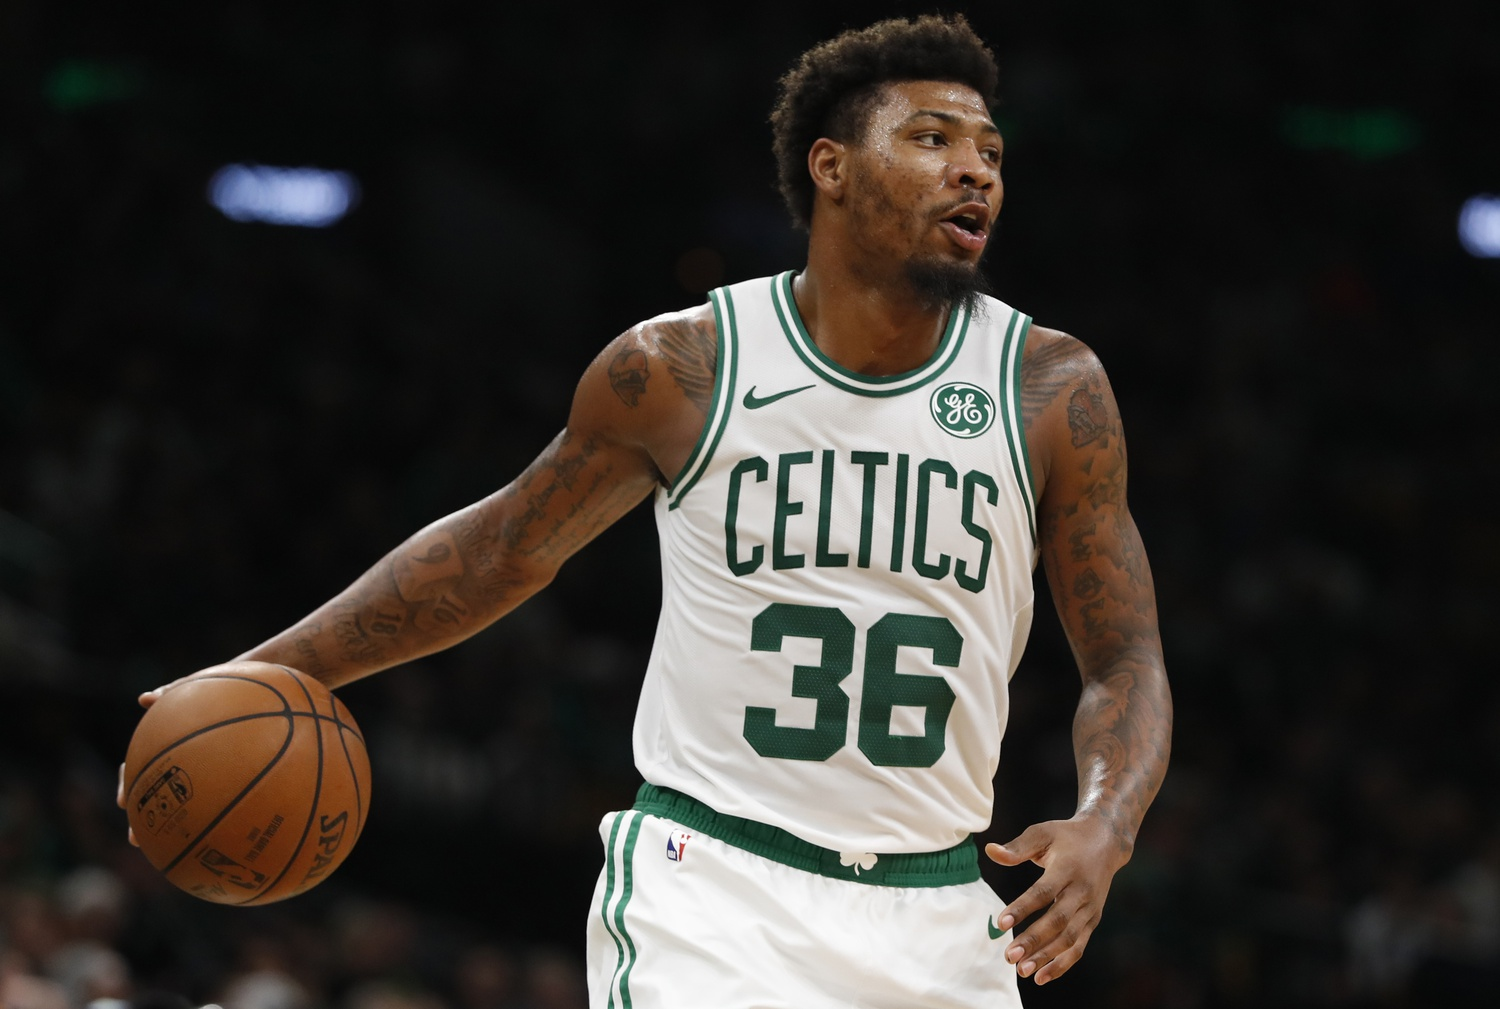 Marcus Smart talks about his injury (oblique), far from setting a return date